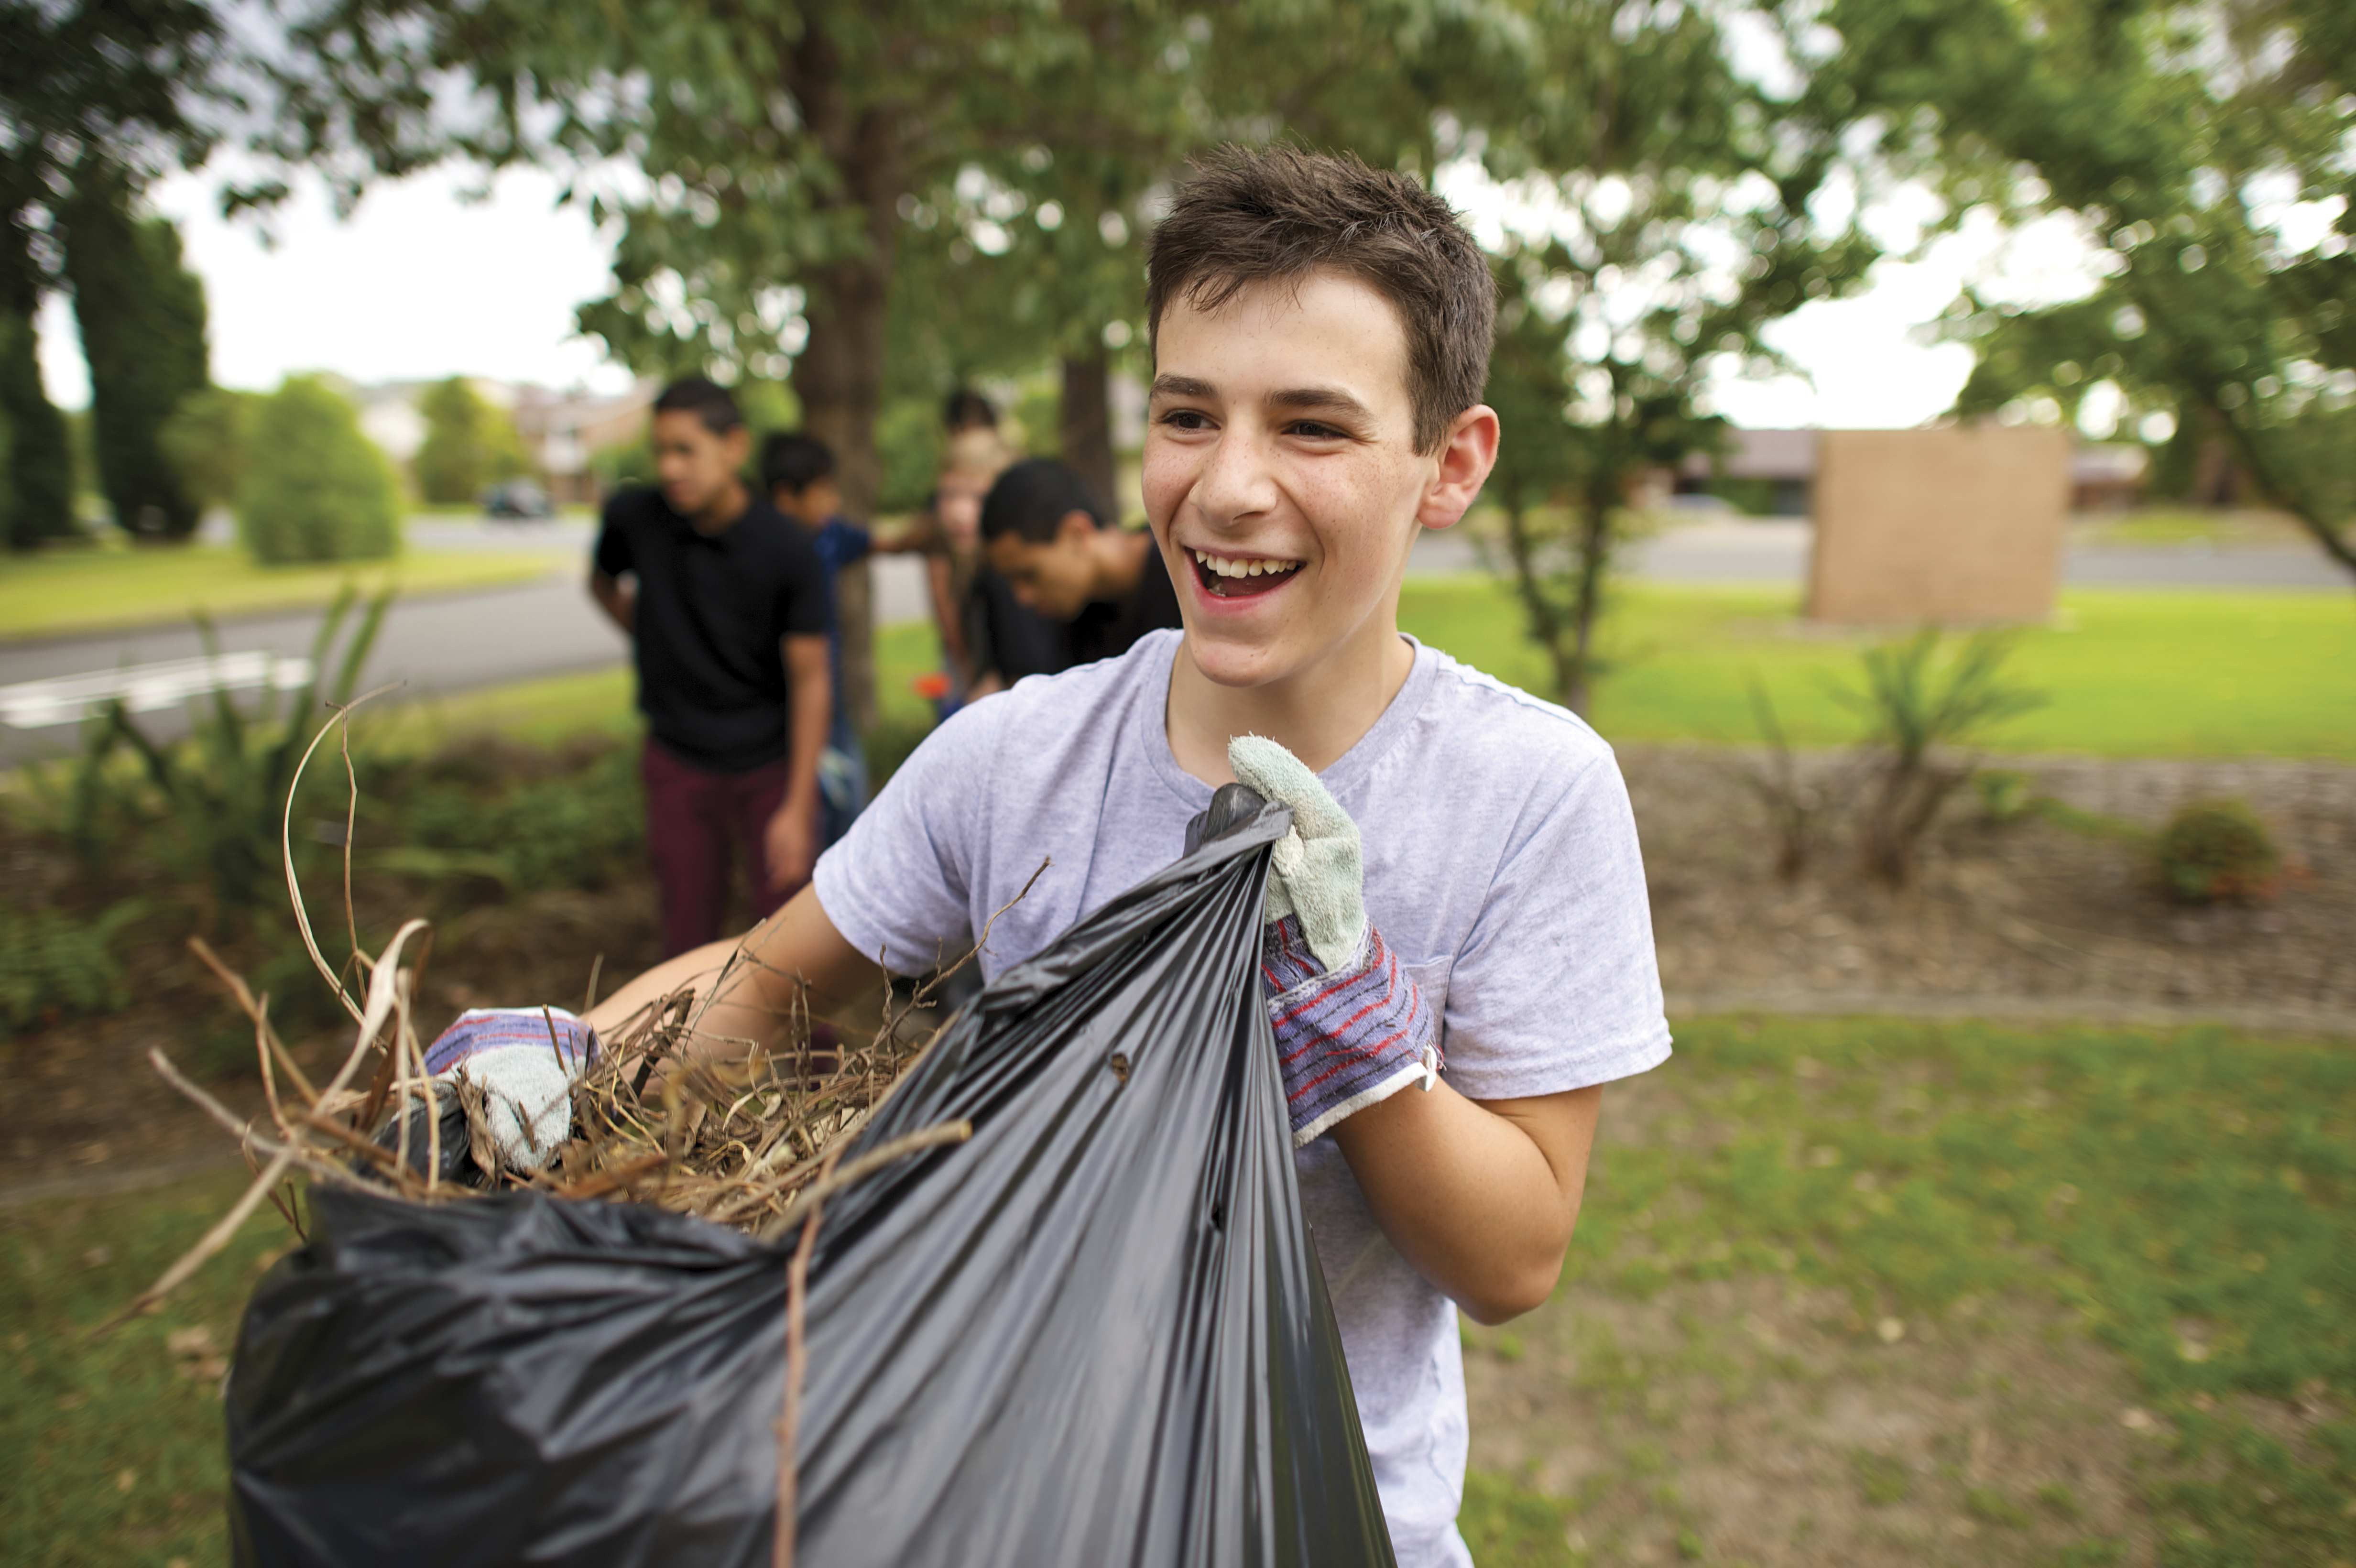 A group of young men clean up a yard.